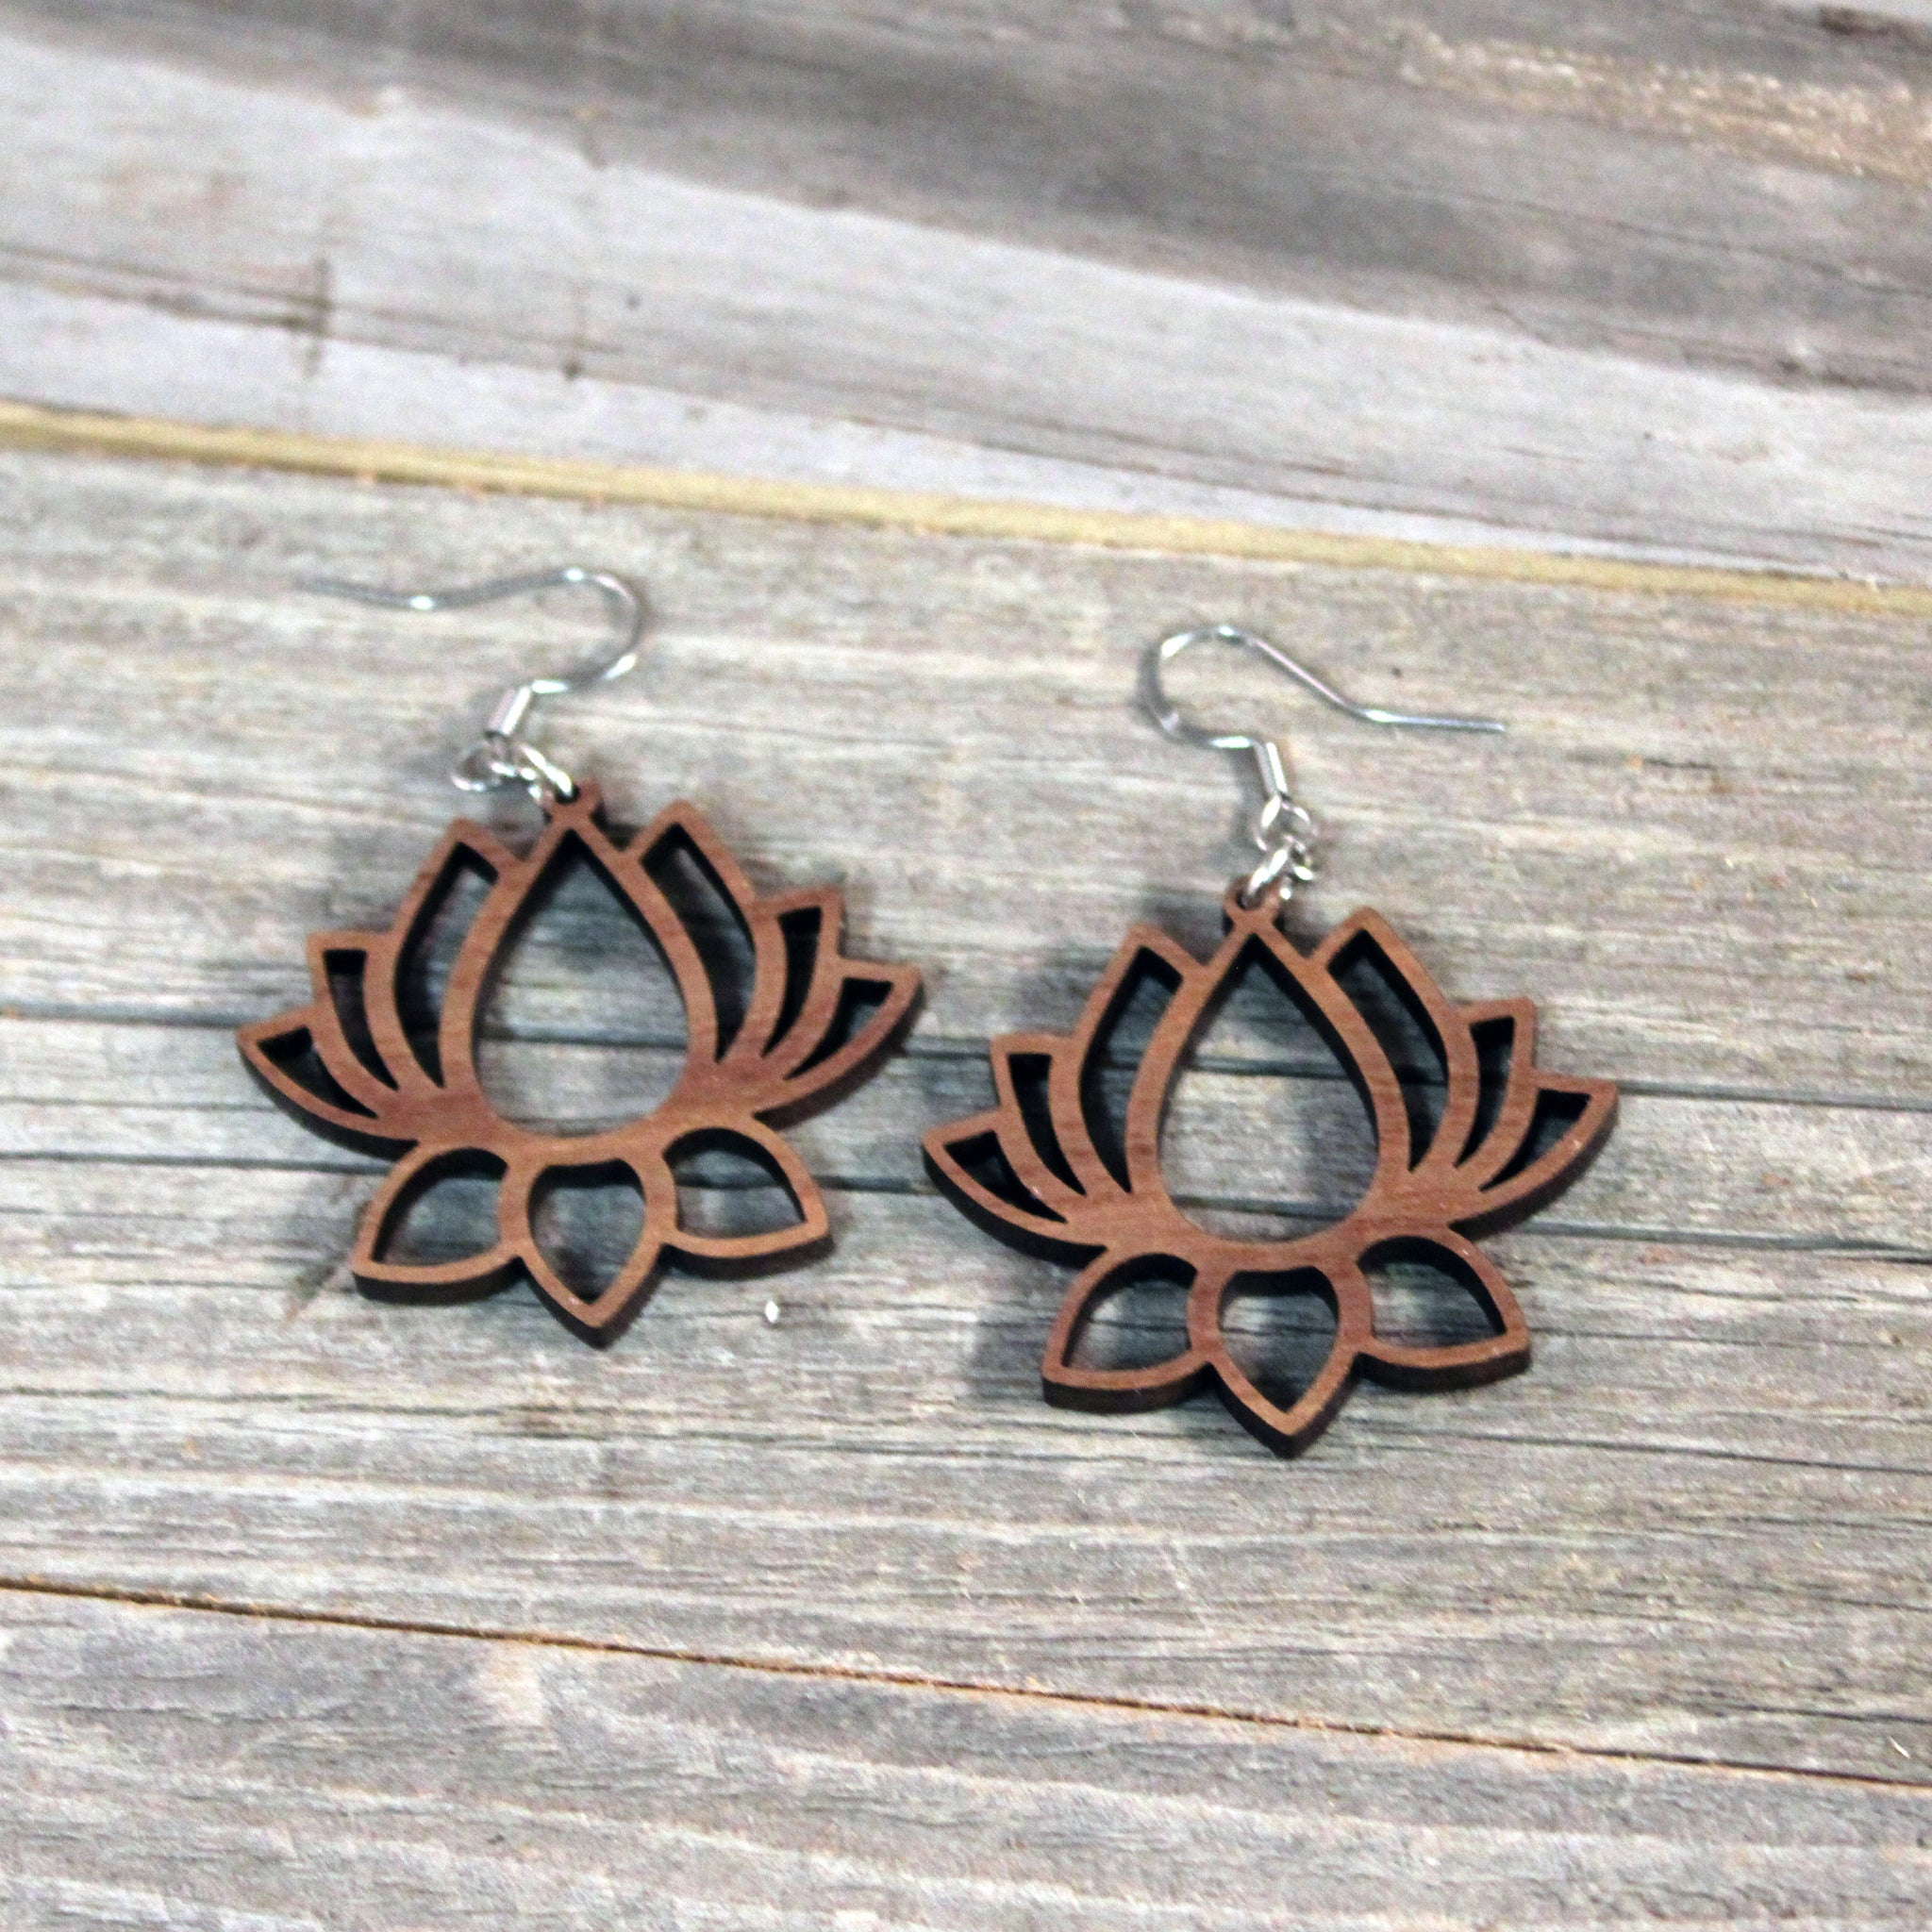 Wooden Earrings/Lotus Flower Dangle Earrings/Bridesmaid Earrings/Lightweight Lotus Flower from Wood/Hypoallergenic Stainless Steel